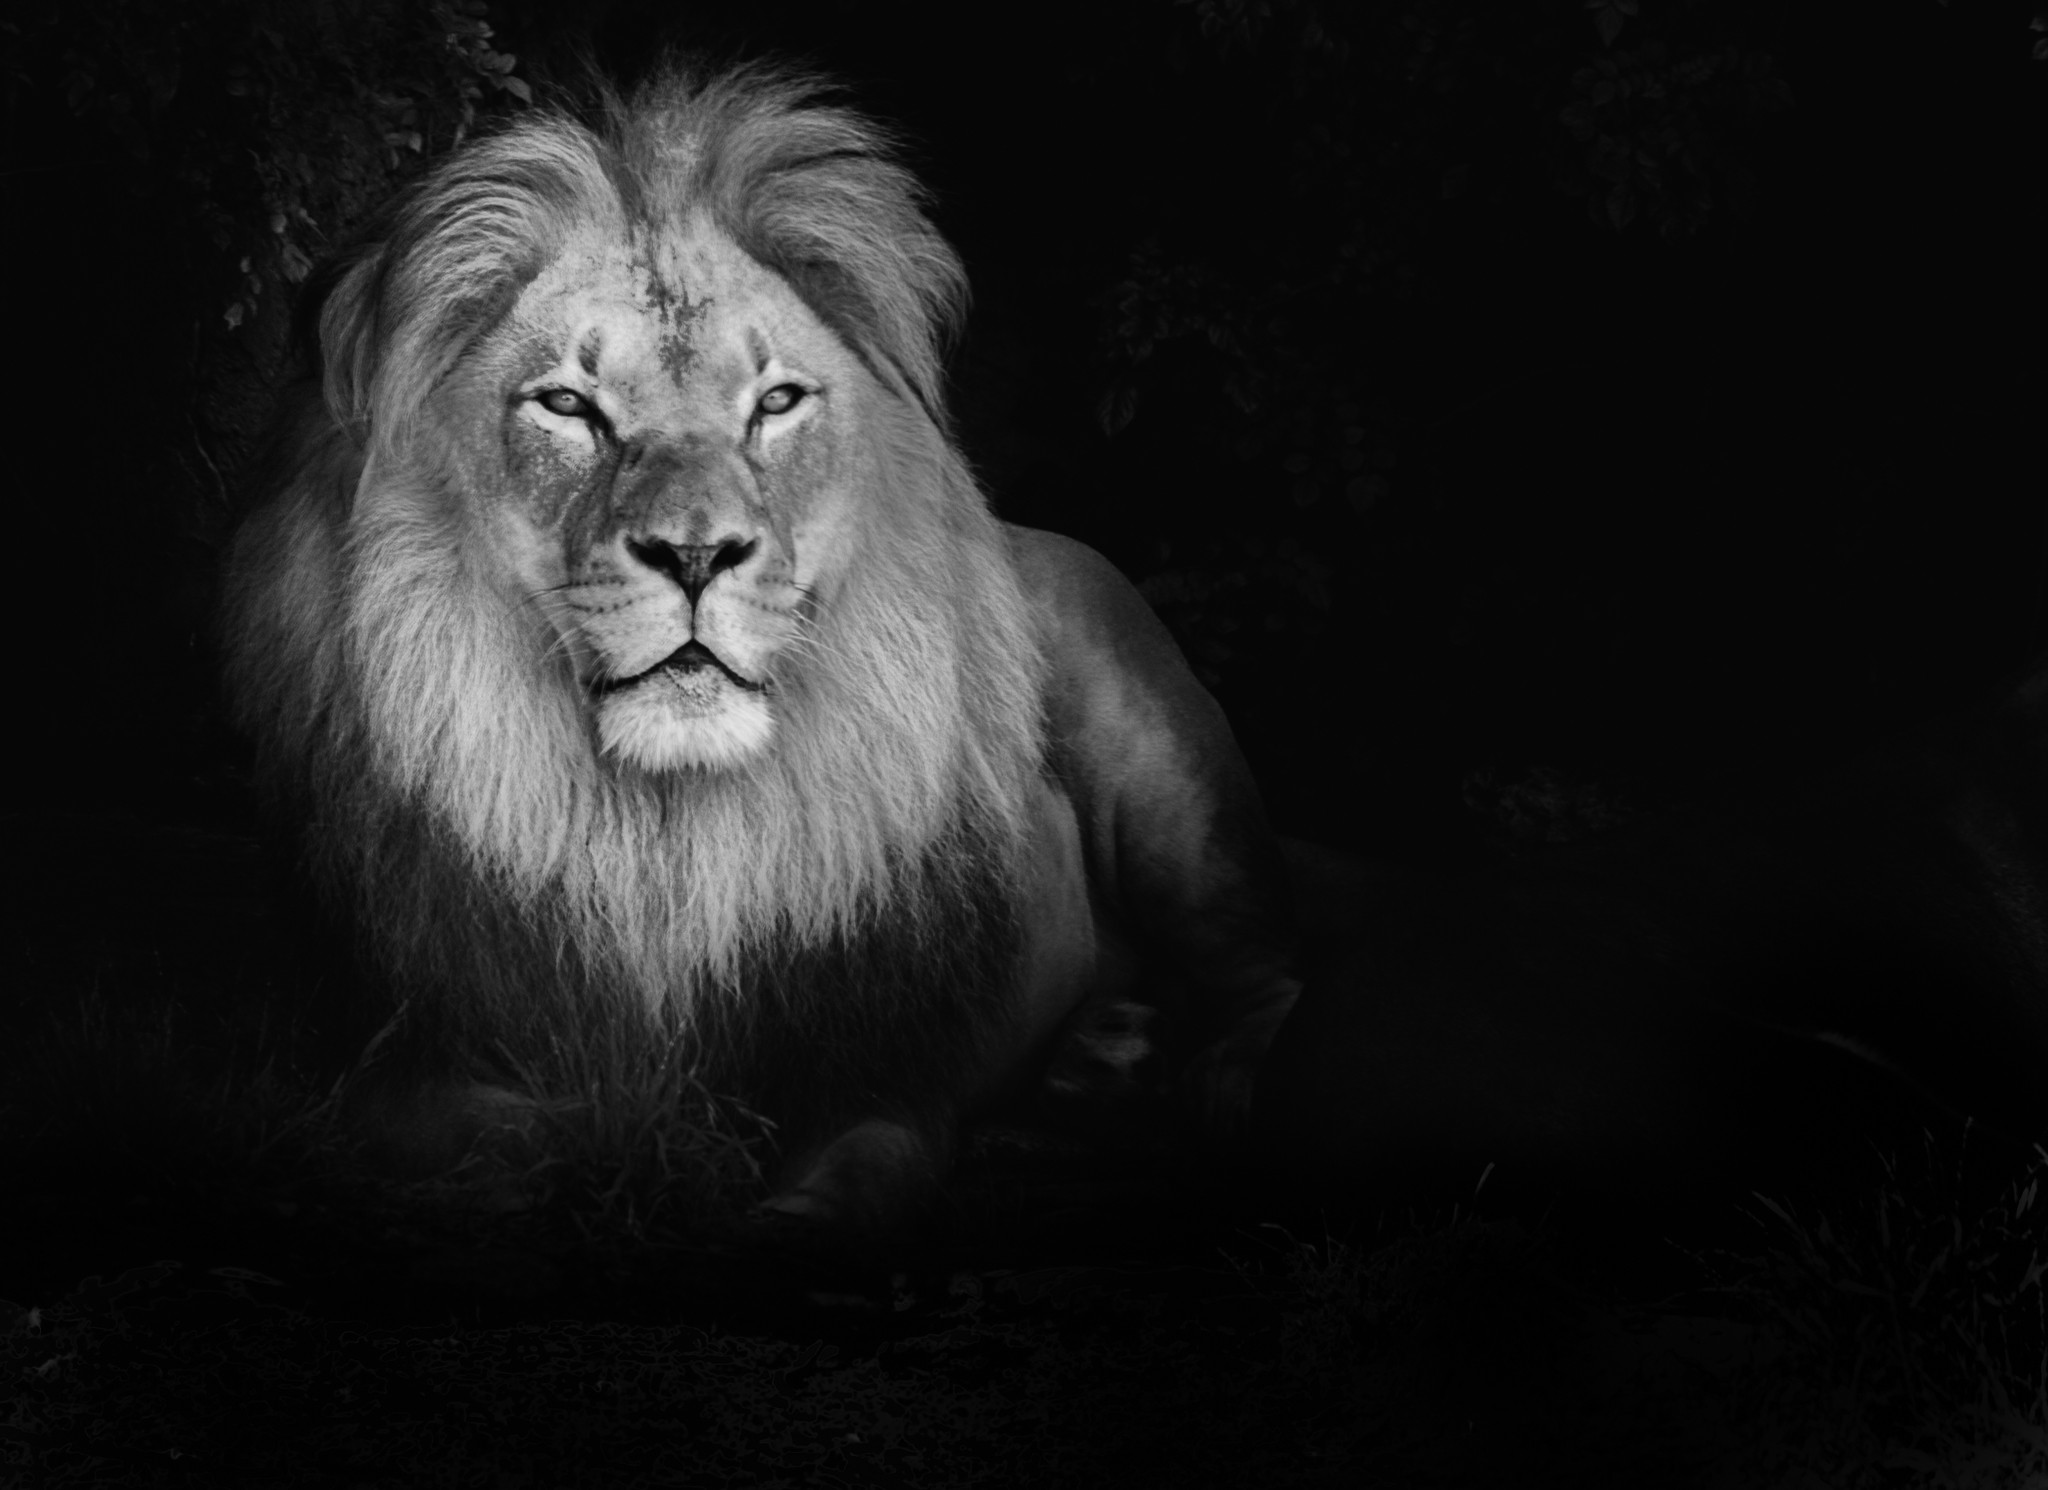 Lion images black and white - photo#6